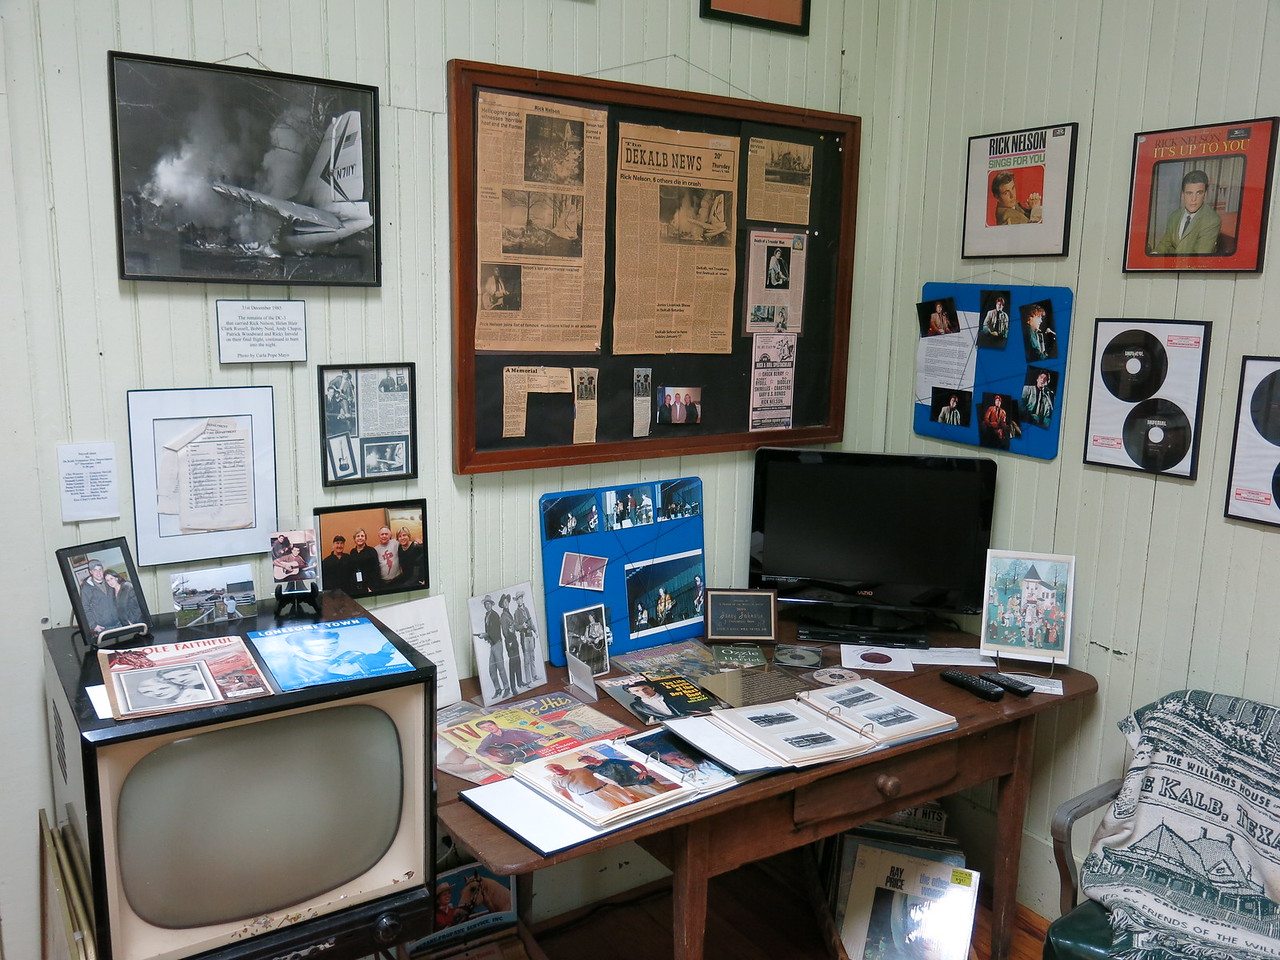 """A portion of this room was devoted to Rick Nelson and the tragic accident that claimed his life and others. The other half of the room is devoted to the late actor Dan Blocker of TV's """"Bonanza""""."""